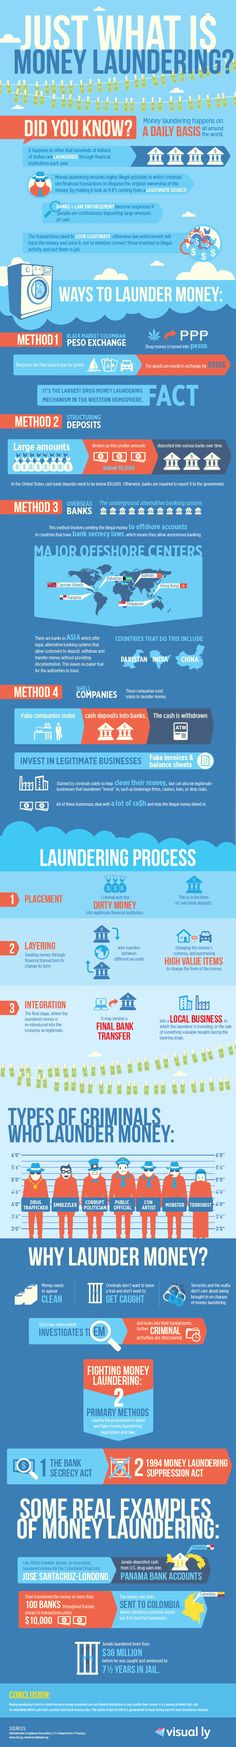 Did you know that money laundering happens on a daily basis all around the world?